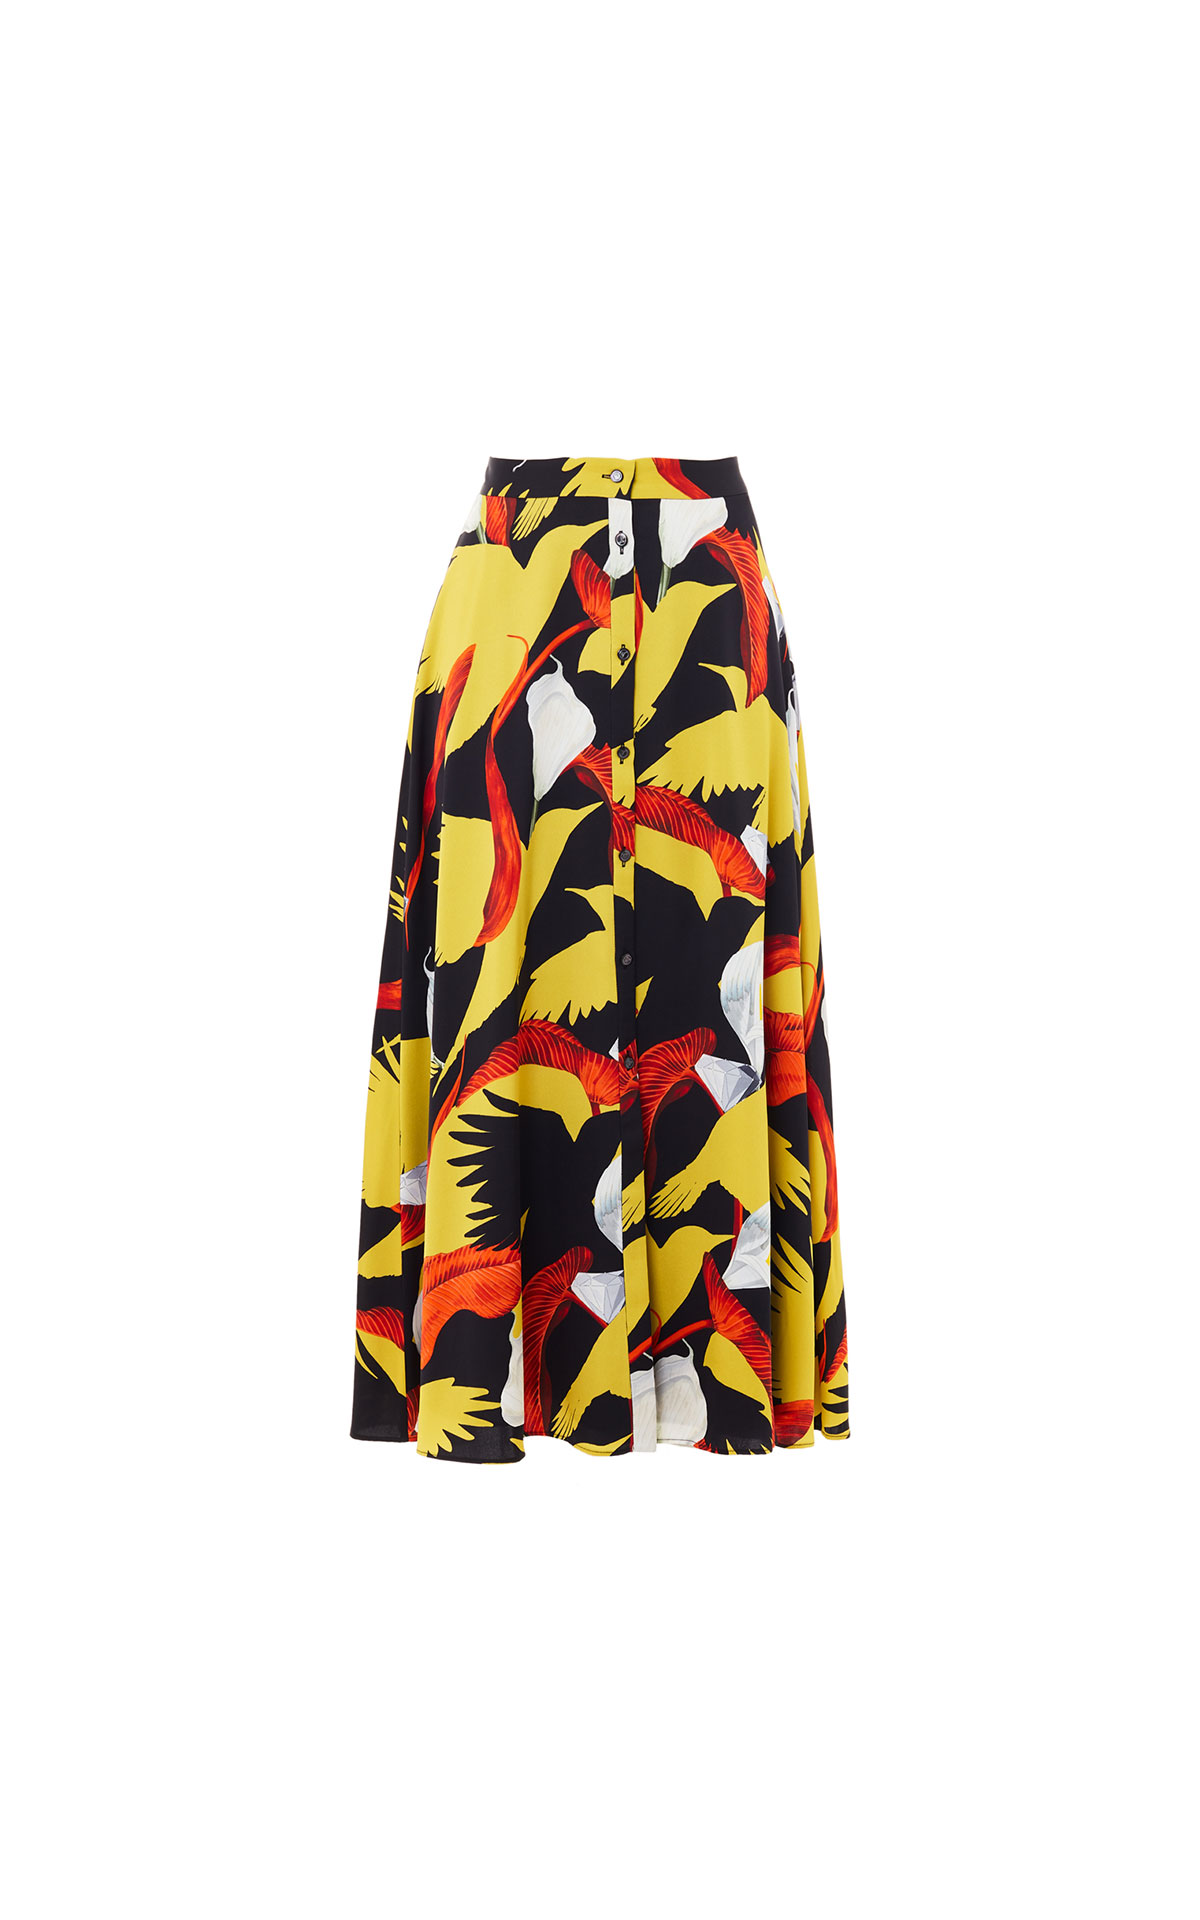 Temperley London Theodora skirt from Bicester Village